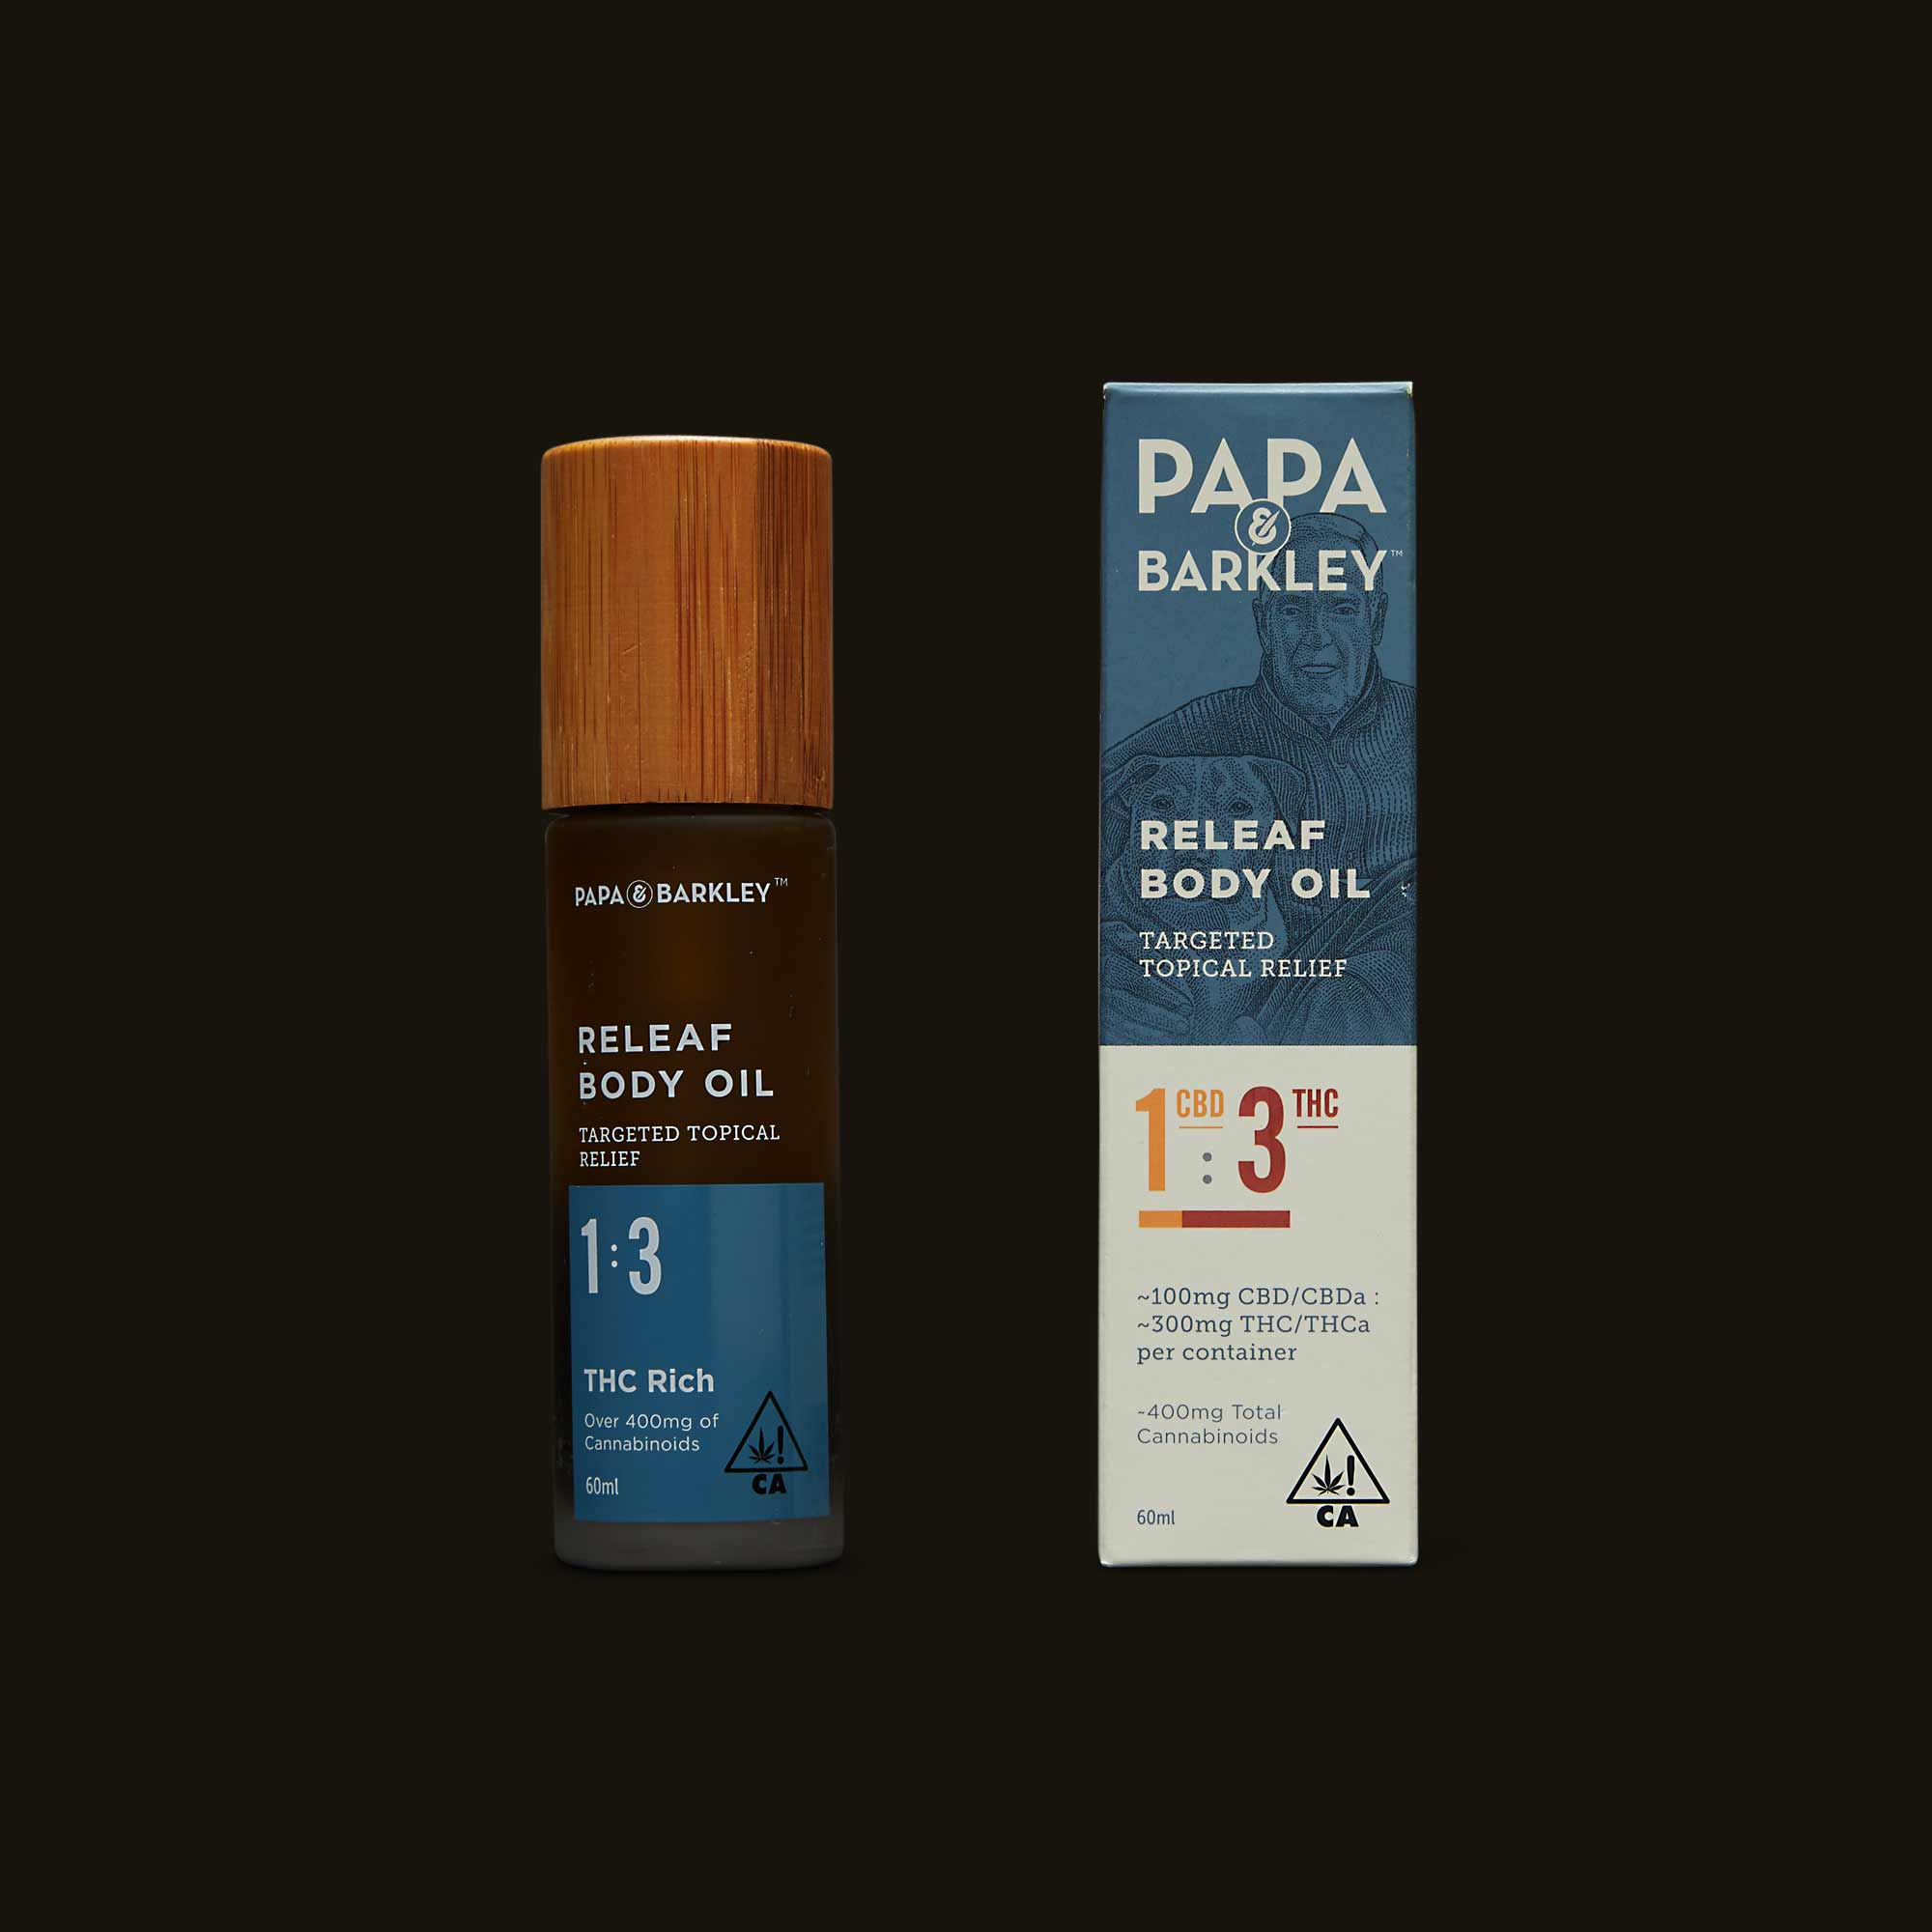 Papa & Barkley 1:3 CBD:THC Releaf Body Oil